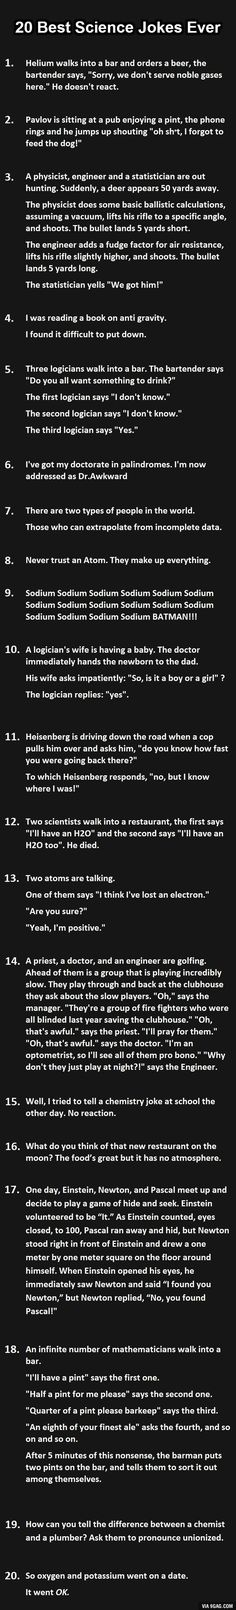 20 best science jokes ever… Do you get them all?